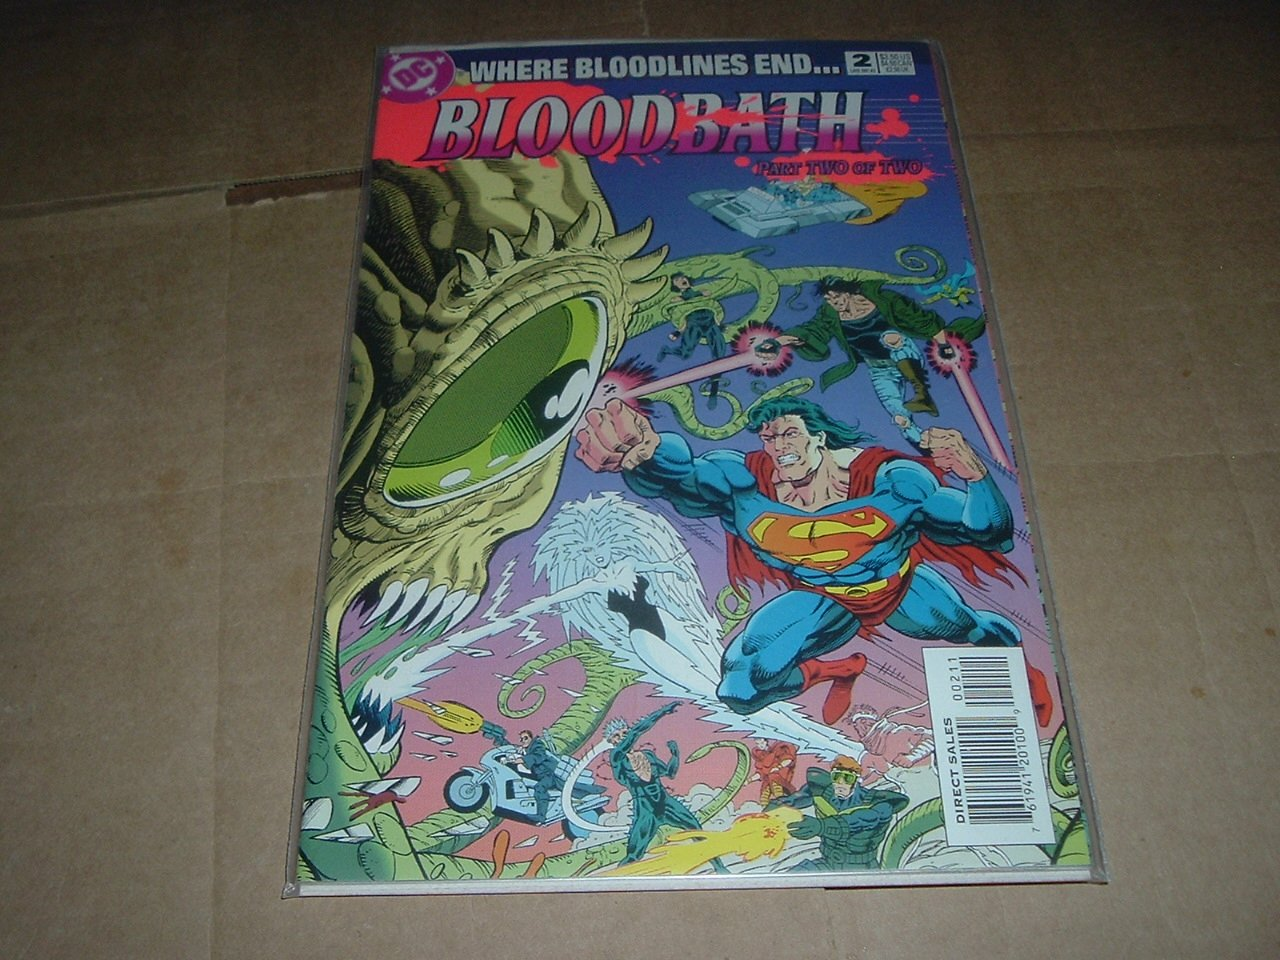 Bloodbath #2 NEAR MINT 2nd Hitman, Final Issue of Bloodlines 1993 Annuals Crossover event DC Comics